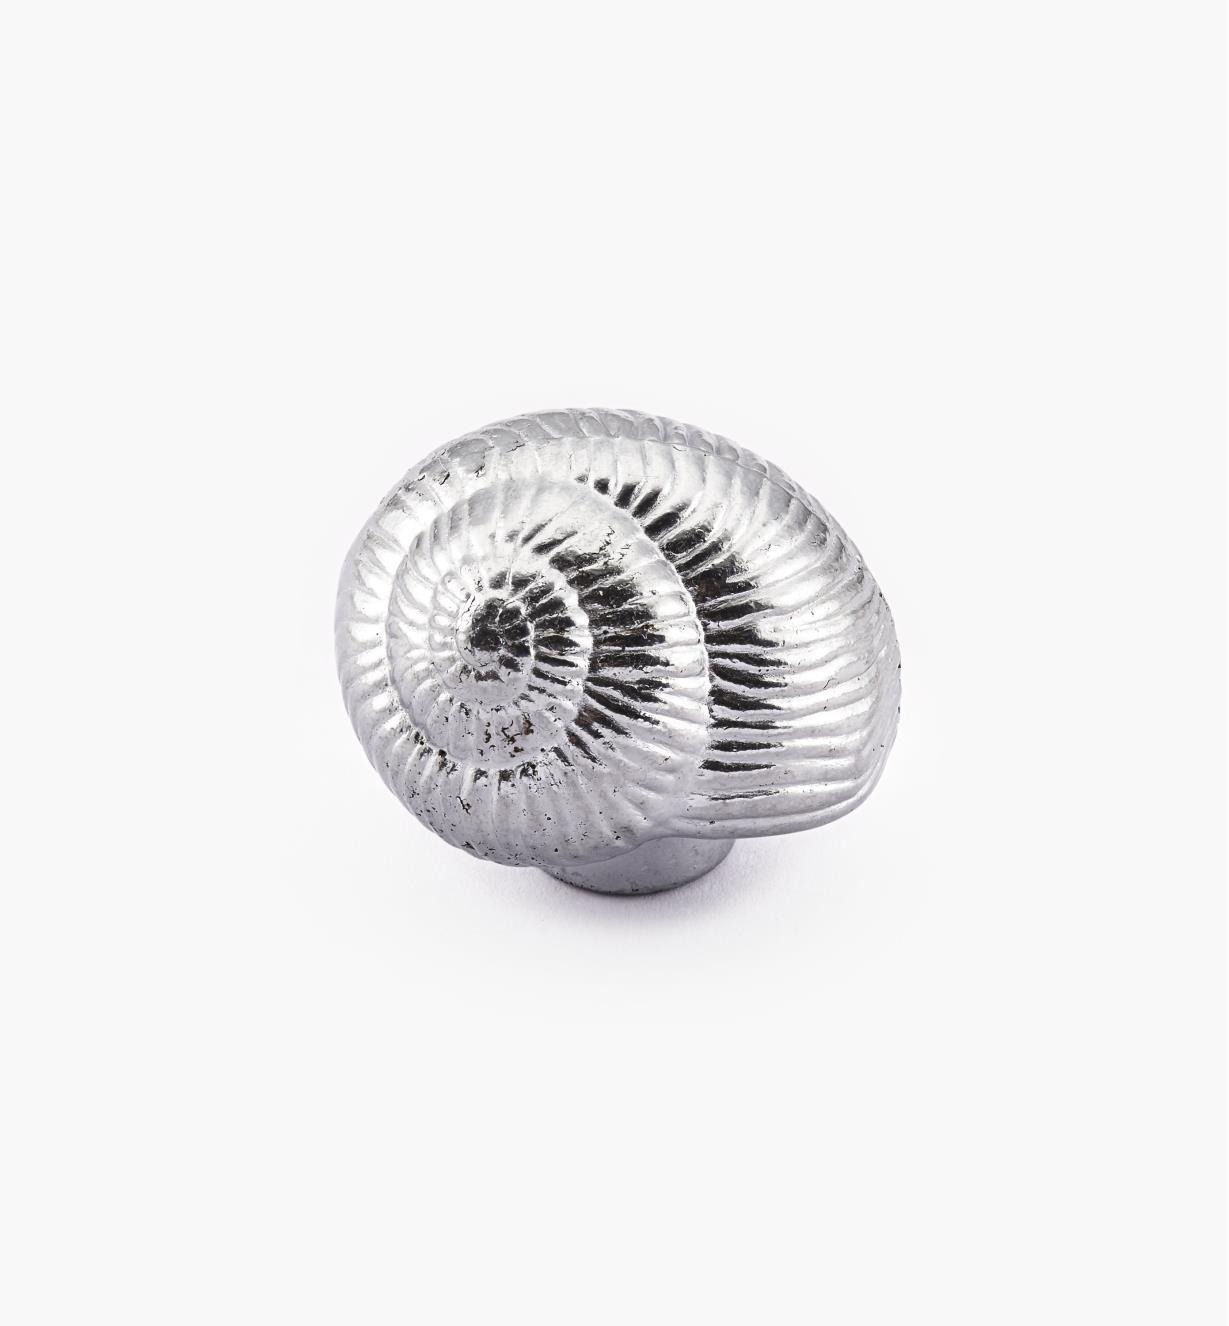 00W5113 - Snail Shell Ocean-Themed Knob, 27mm x 42mm